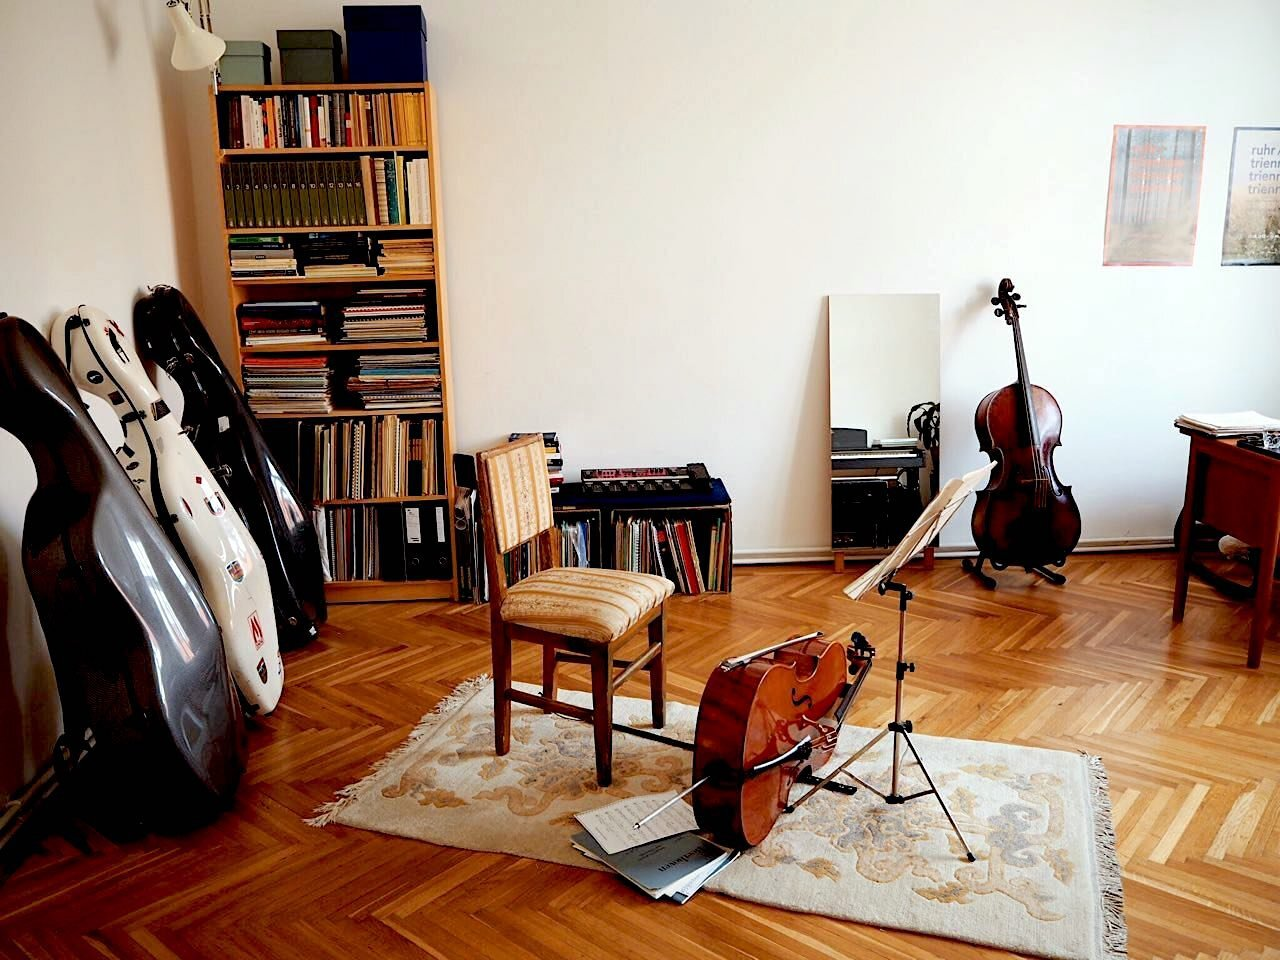 Prepare the instruments for a photo session  If your room has a piano, open the lid for both the top and keyboard. A cello, double bass or violin? Take them out of their cases and show them off!